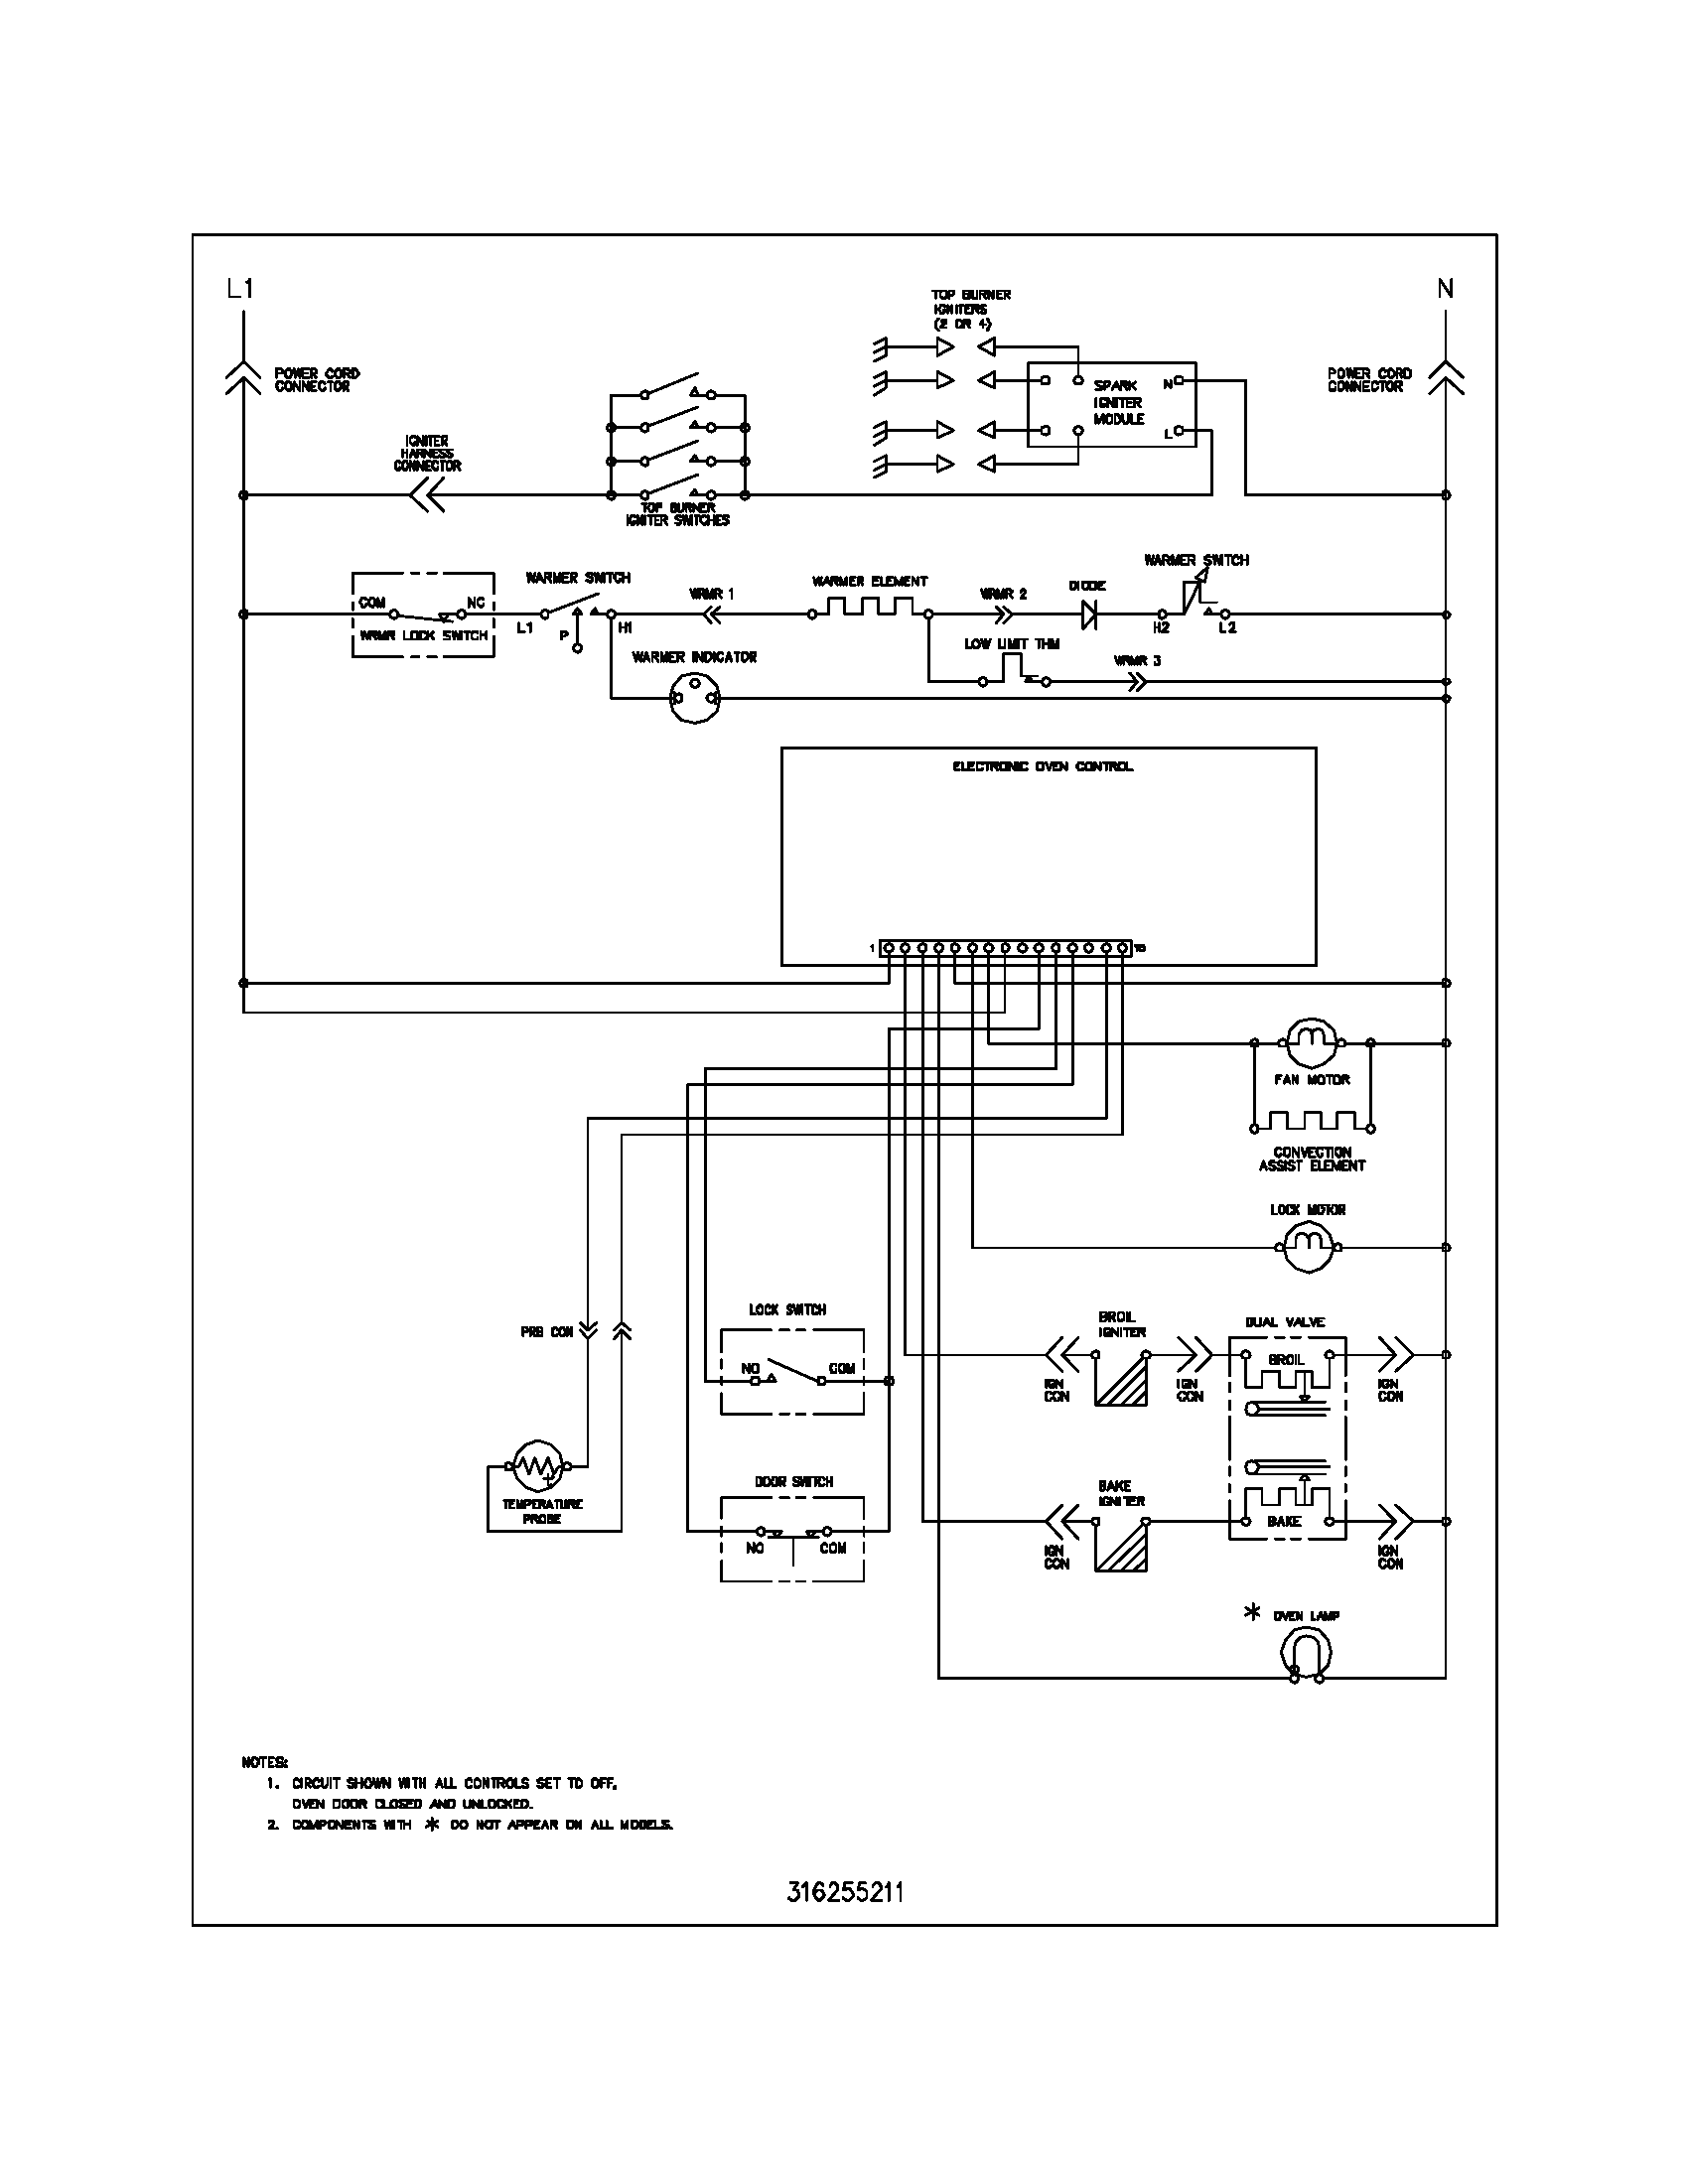 medium resolution of electric furnace schematic diagram wiring diagram toolbox electric furnace schematic diagram eb15b electric furnace wiring diagrams